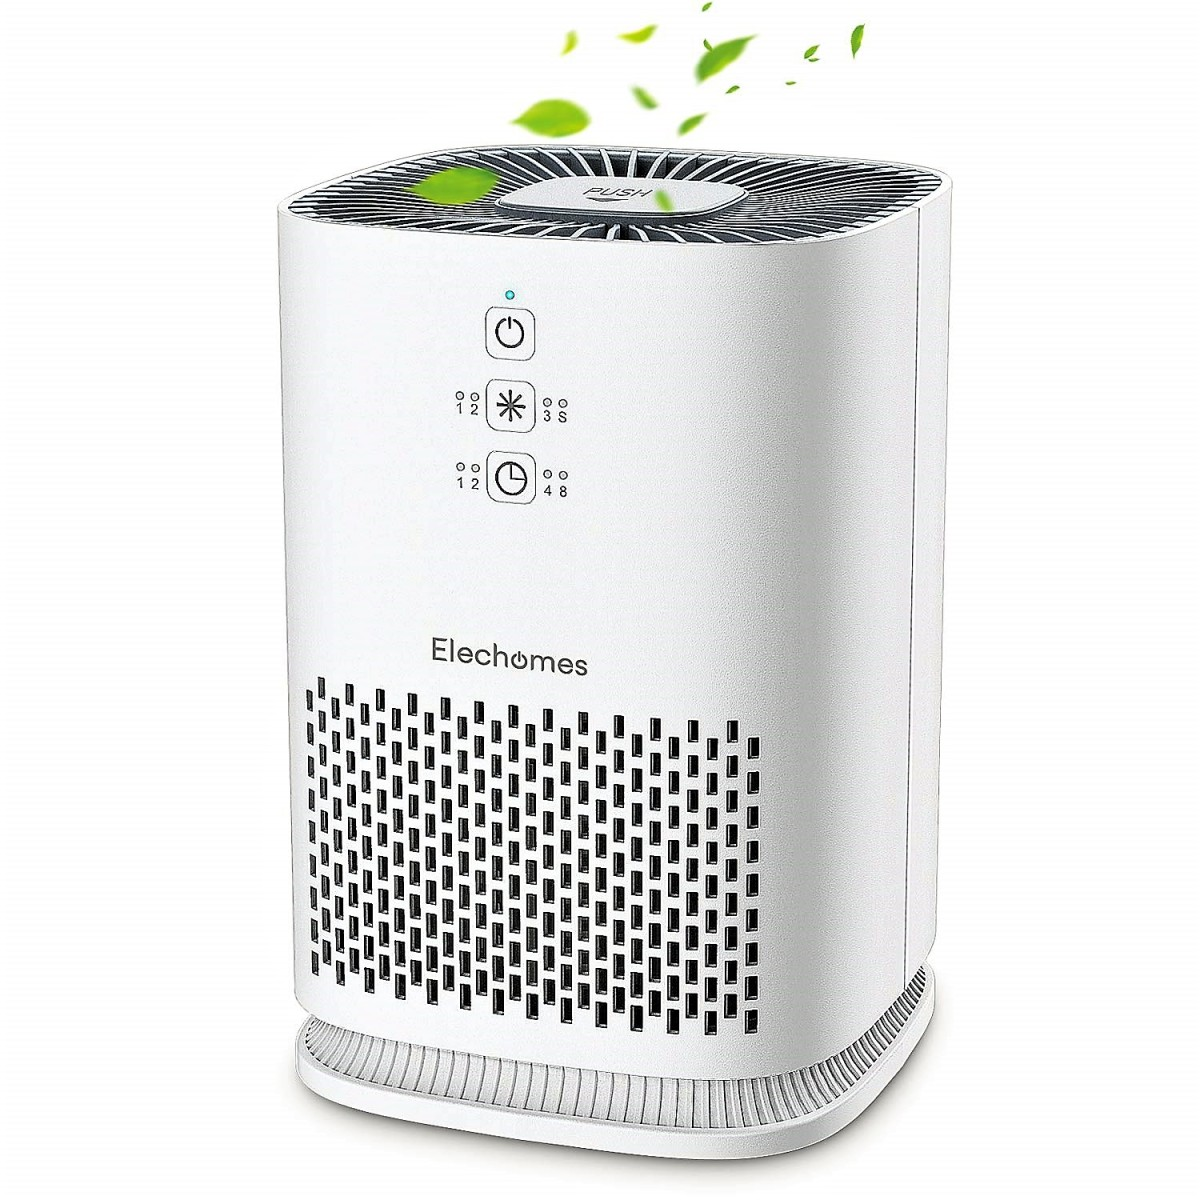 Elechomes Air Purifier Review: The Best Bedroom Filtration